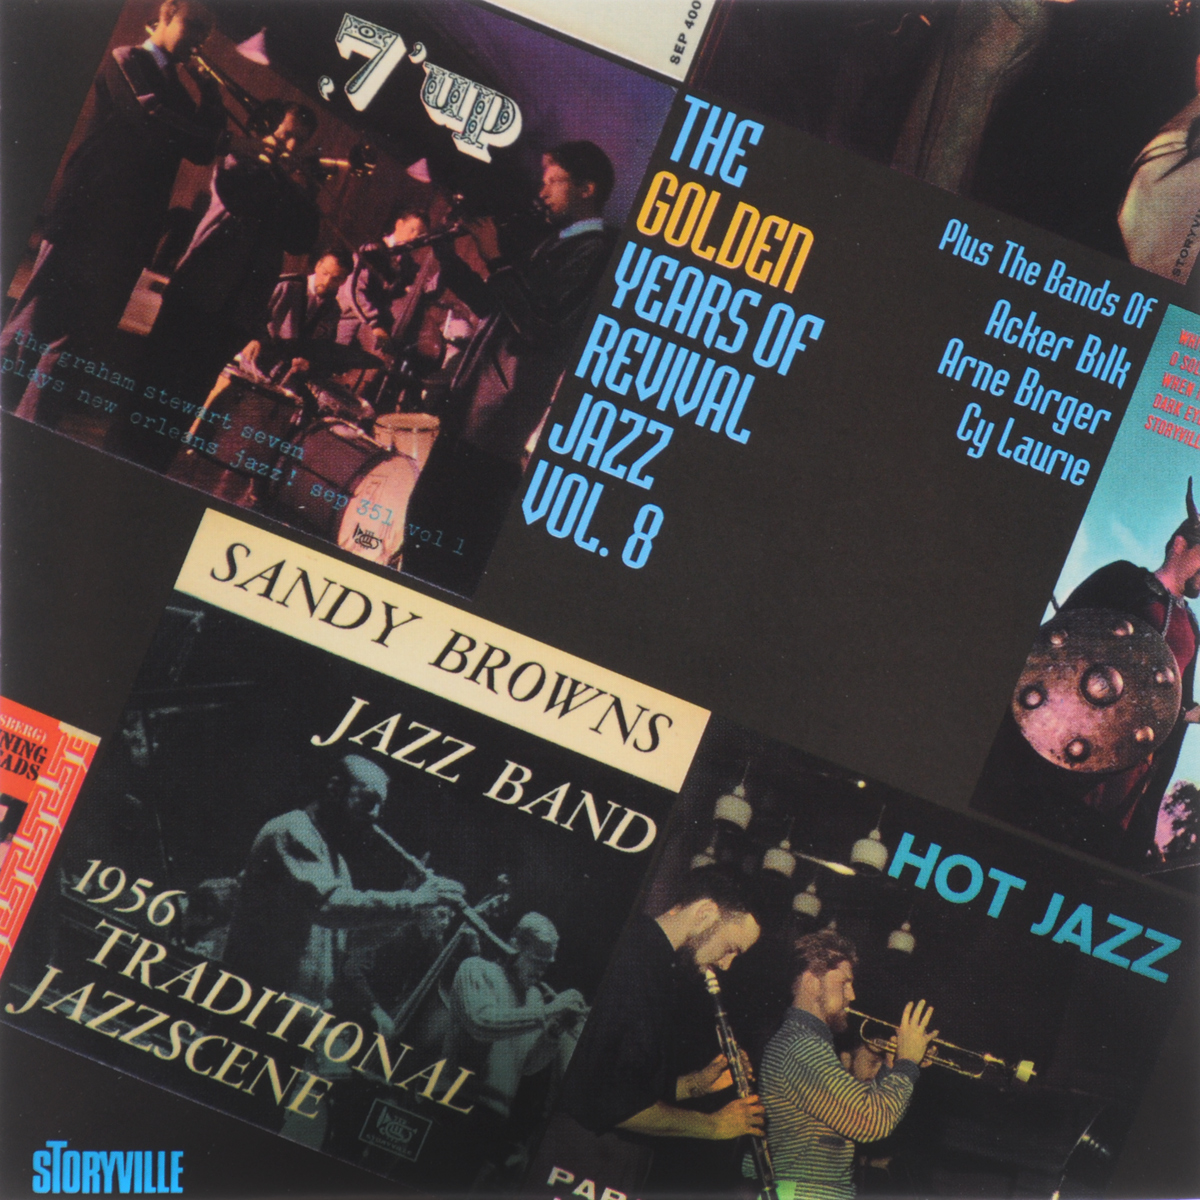 Papa Bue's Viking Jazz Band,Sandy Brown's Jazz Band,The Graham Stewart Seven,Акер Билк,His Paramount Jazz Band,Arne Birger's Jazzsjak,Cy Laurie's New Orleans Septet The Golden Years Of Revival Jazz. Vol.8 graham stewart the history of the times the murdoch years